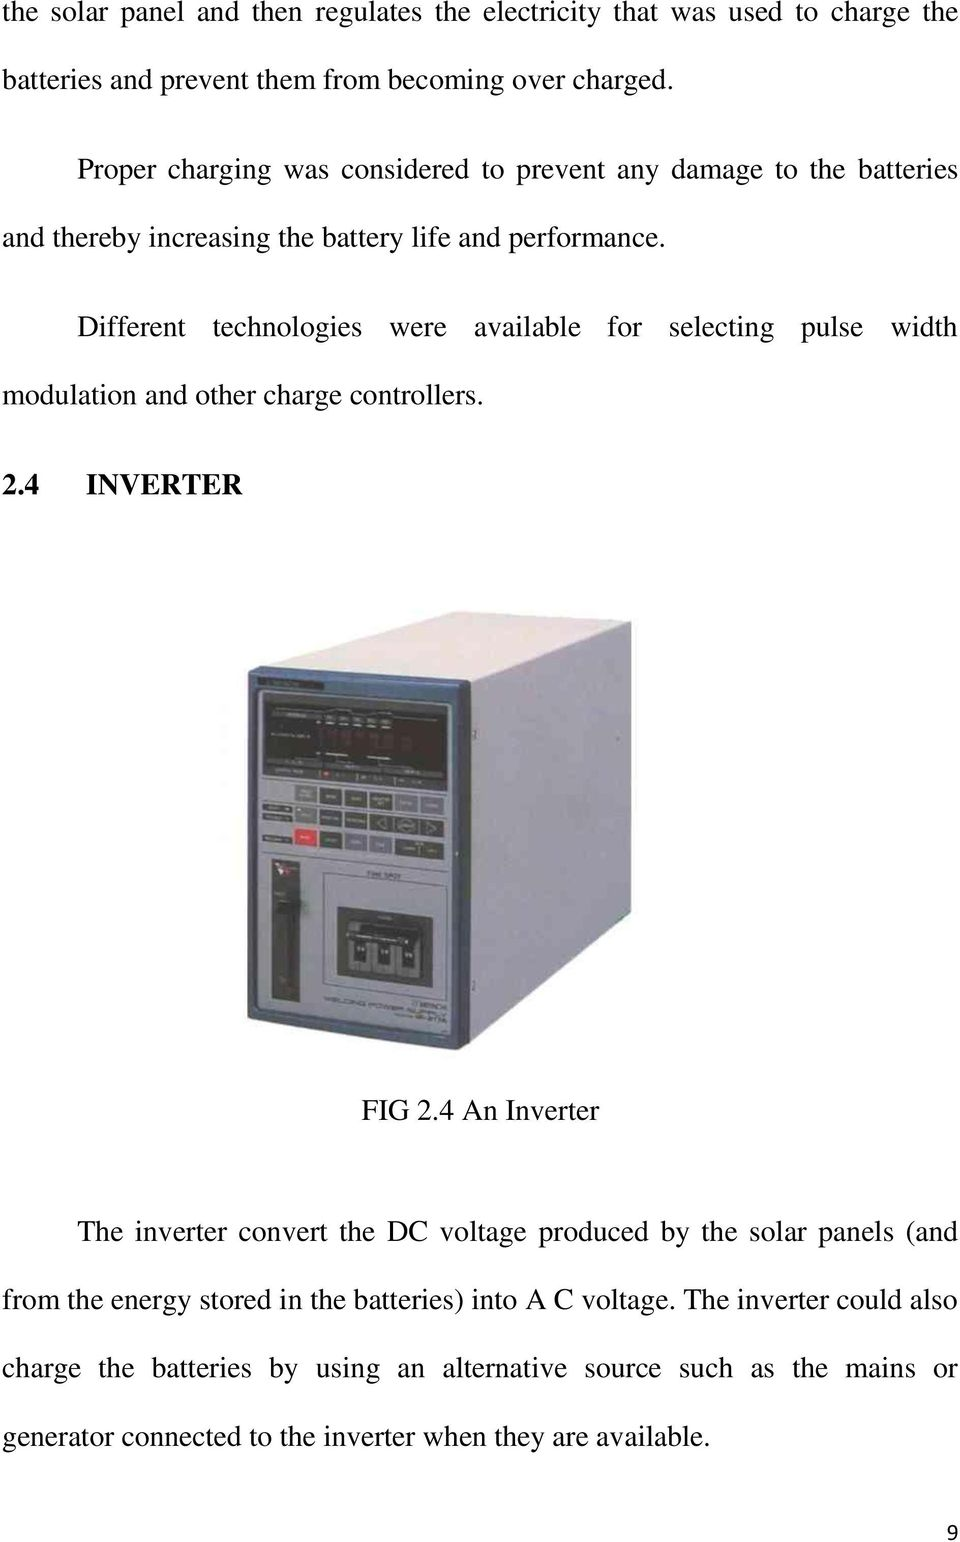 Design And Installation Of 200 Watt Solar Power System Pdf Suoer 2 In 1 Inverter Charger 500 Typer Saa 500w C Different Technologies Were Available For Selecting Pulse Width Modulation Other Charge Controllers 24